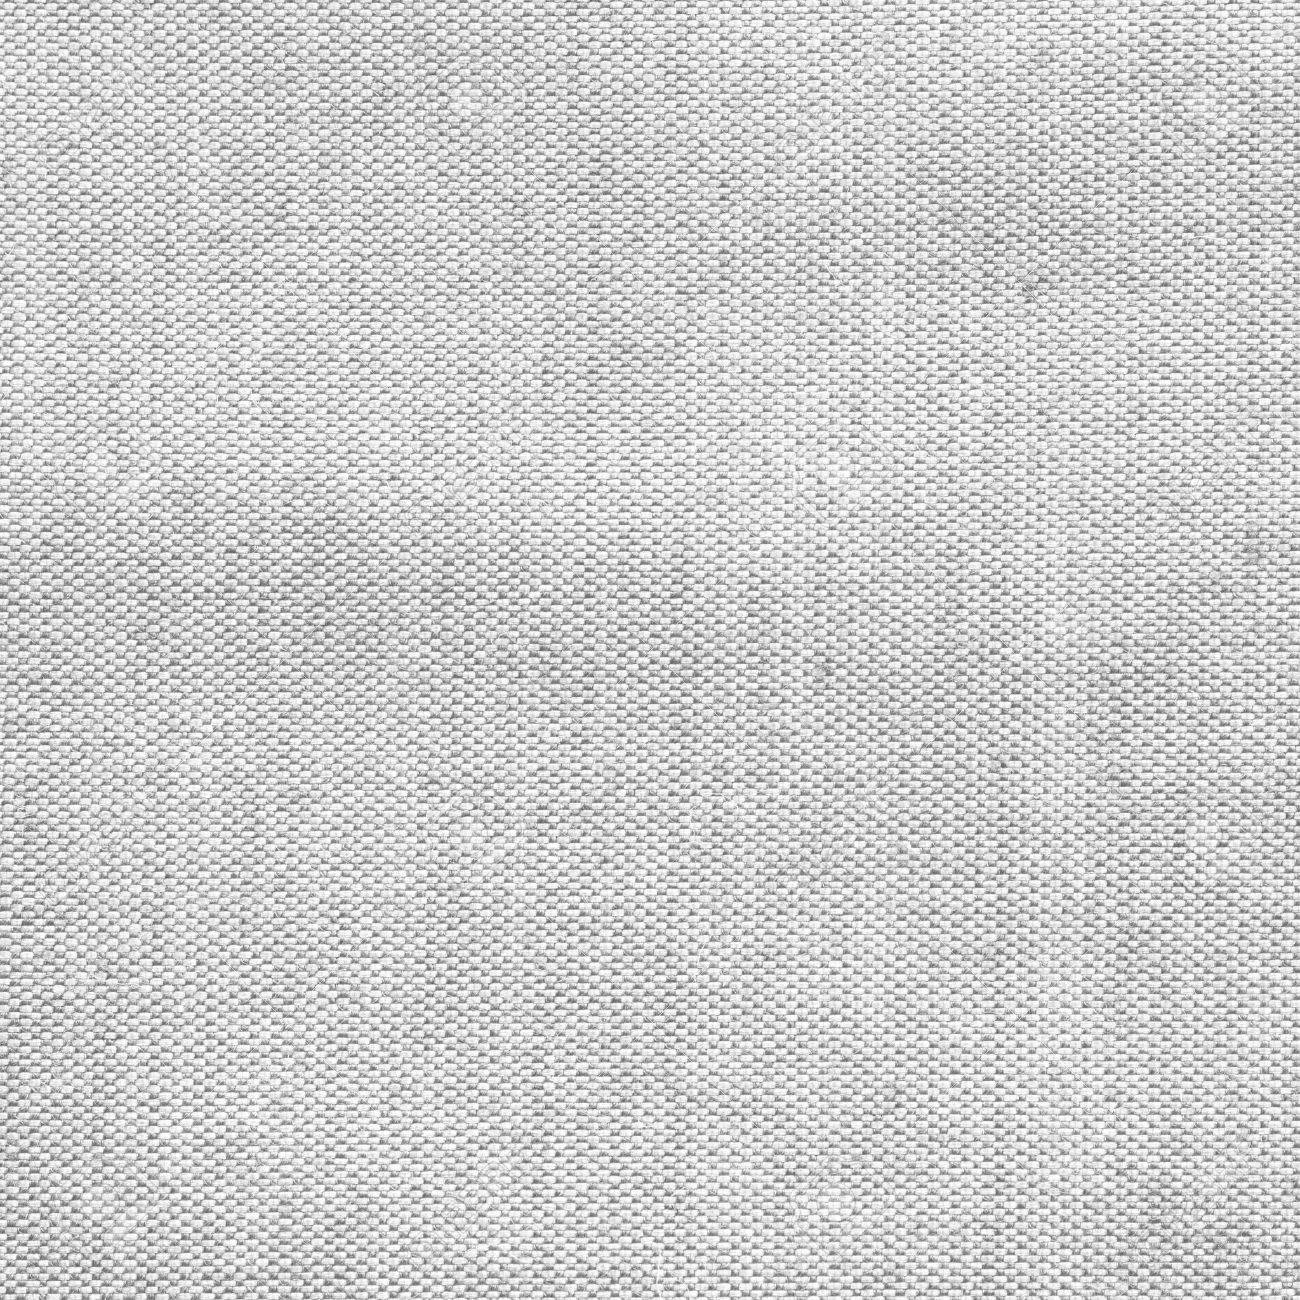 detail of white silk fabric texture and seamless background